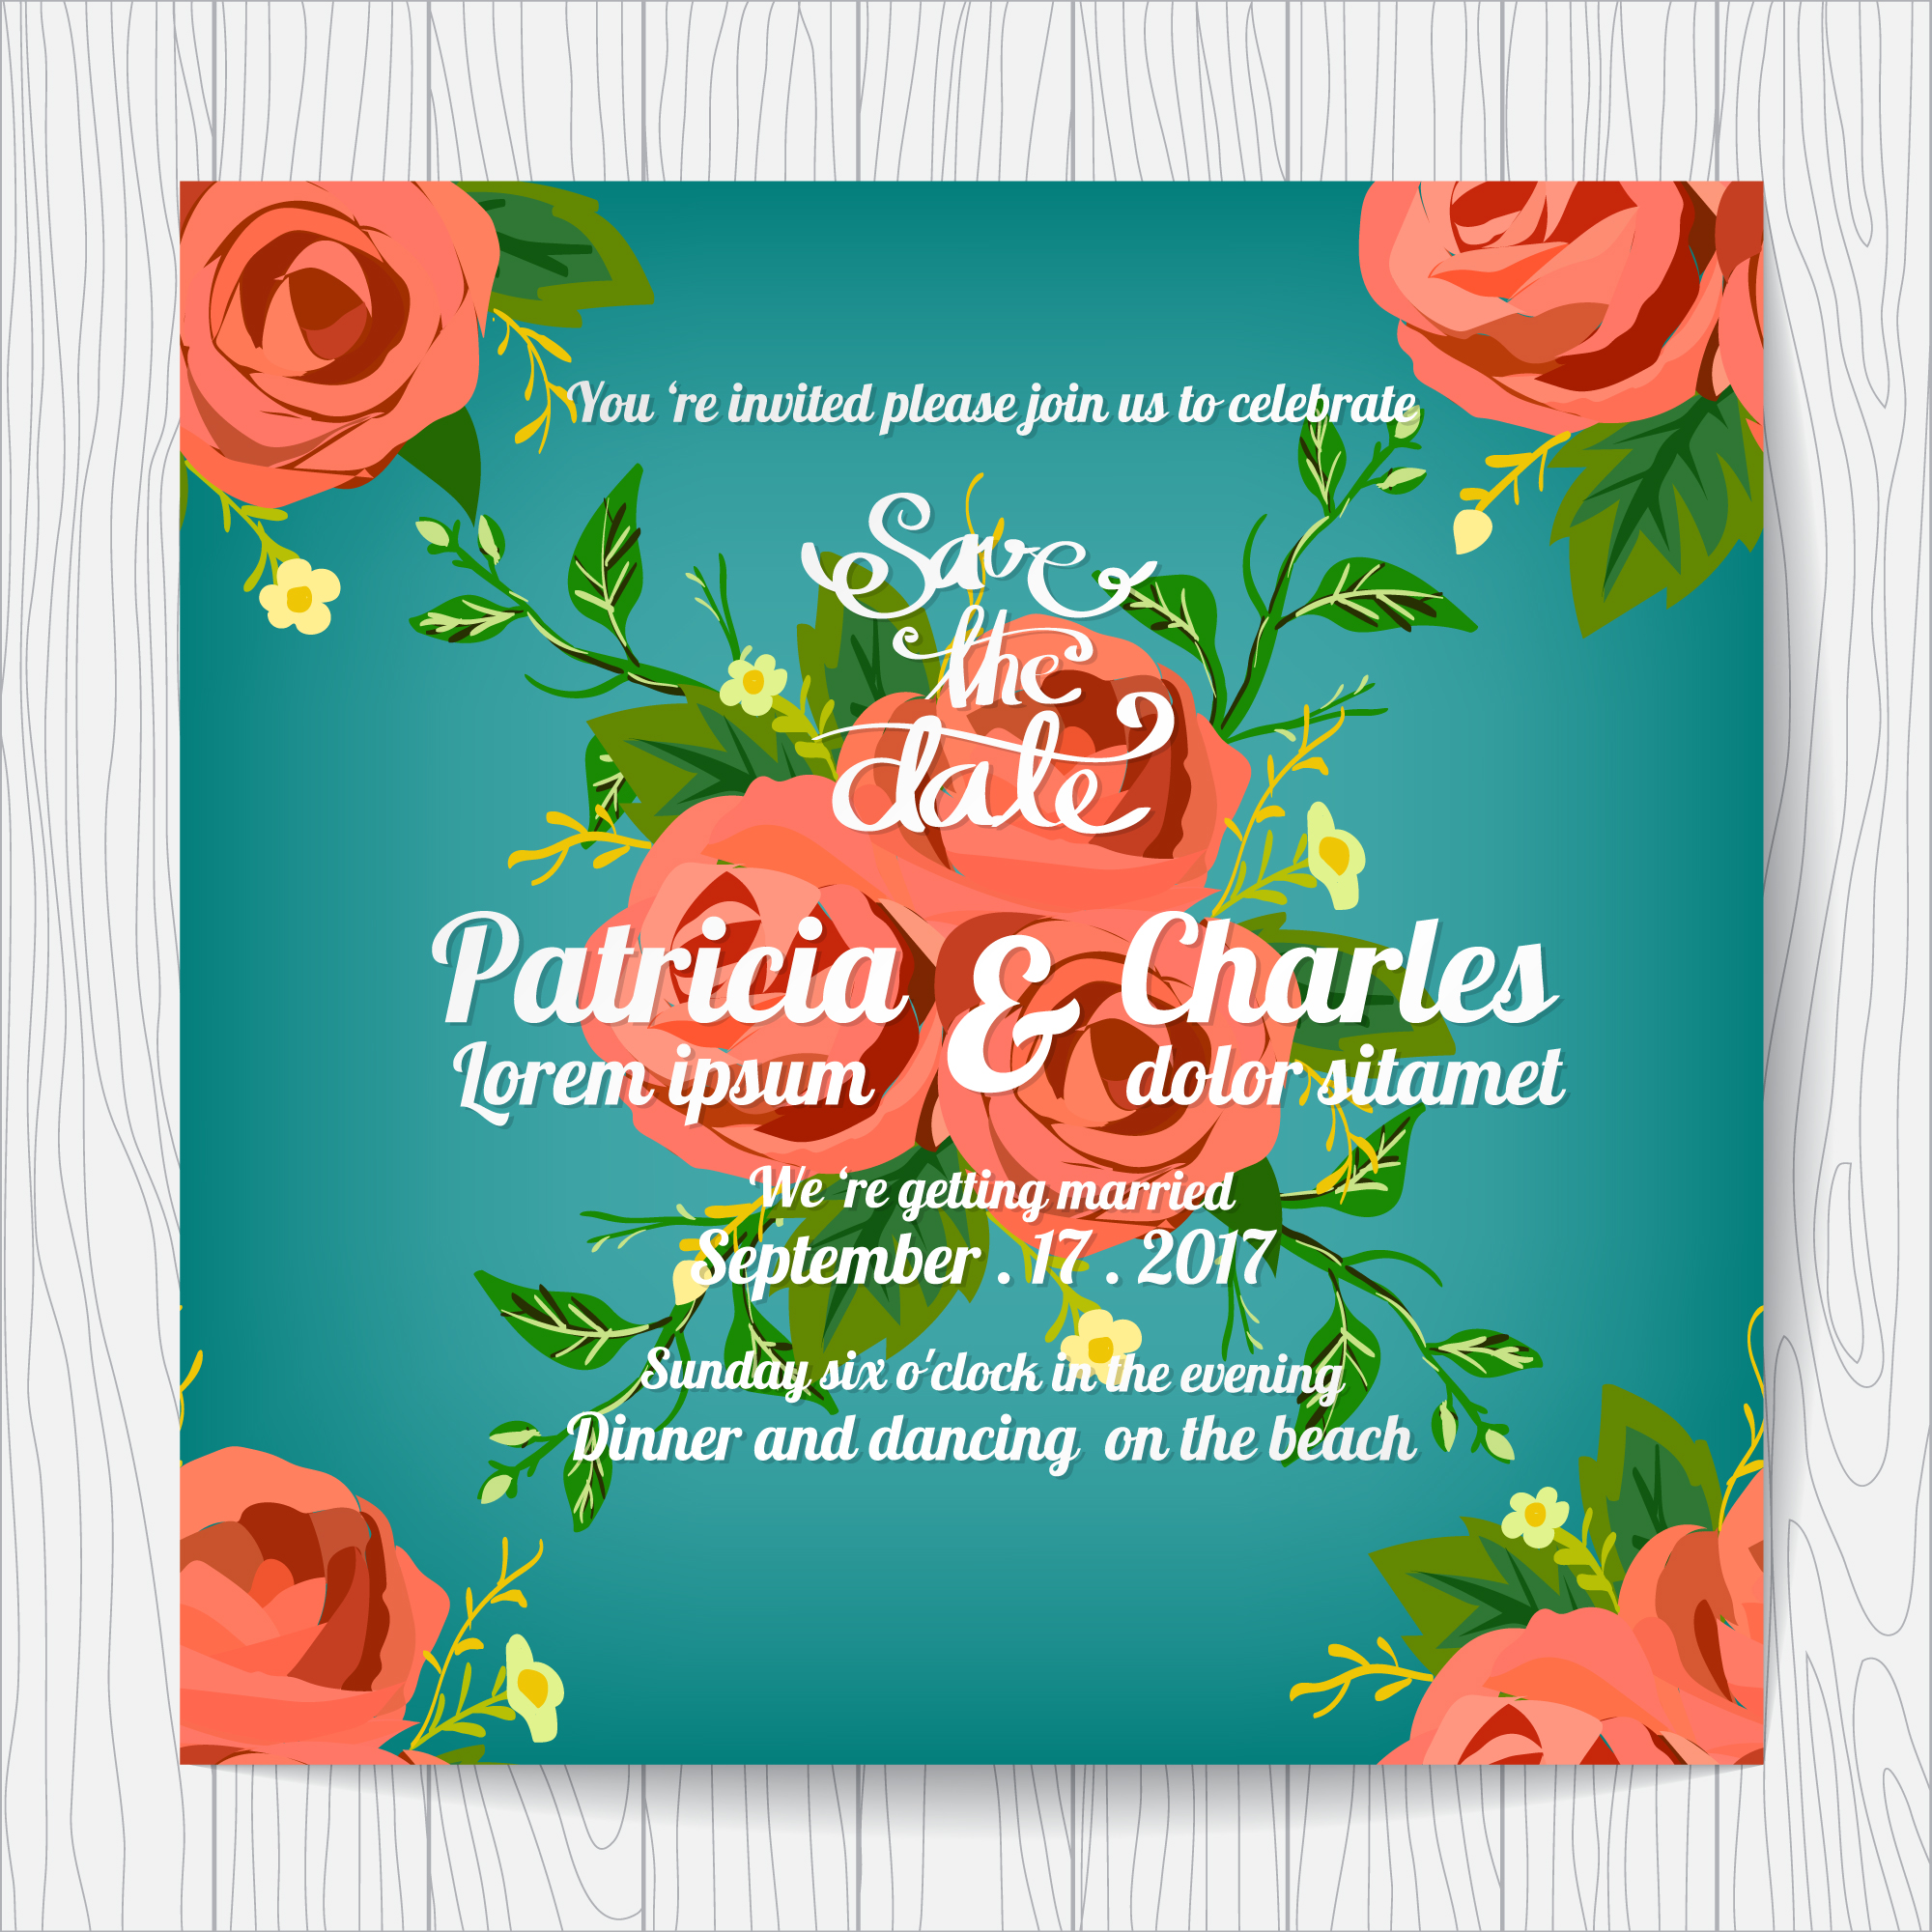 Wedding invitation with roses design and blue backgroun